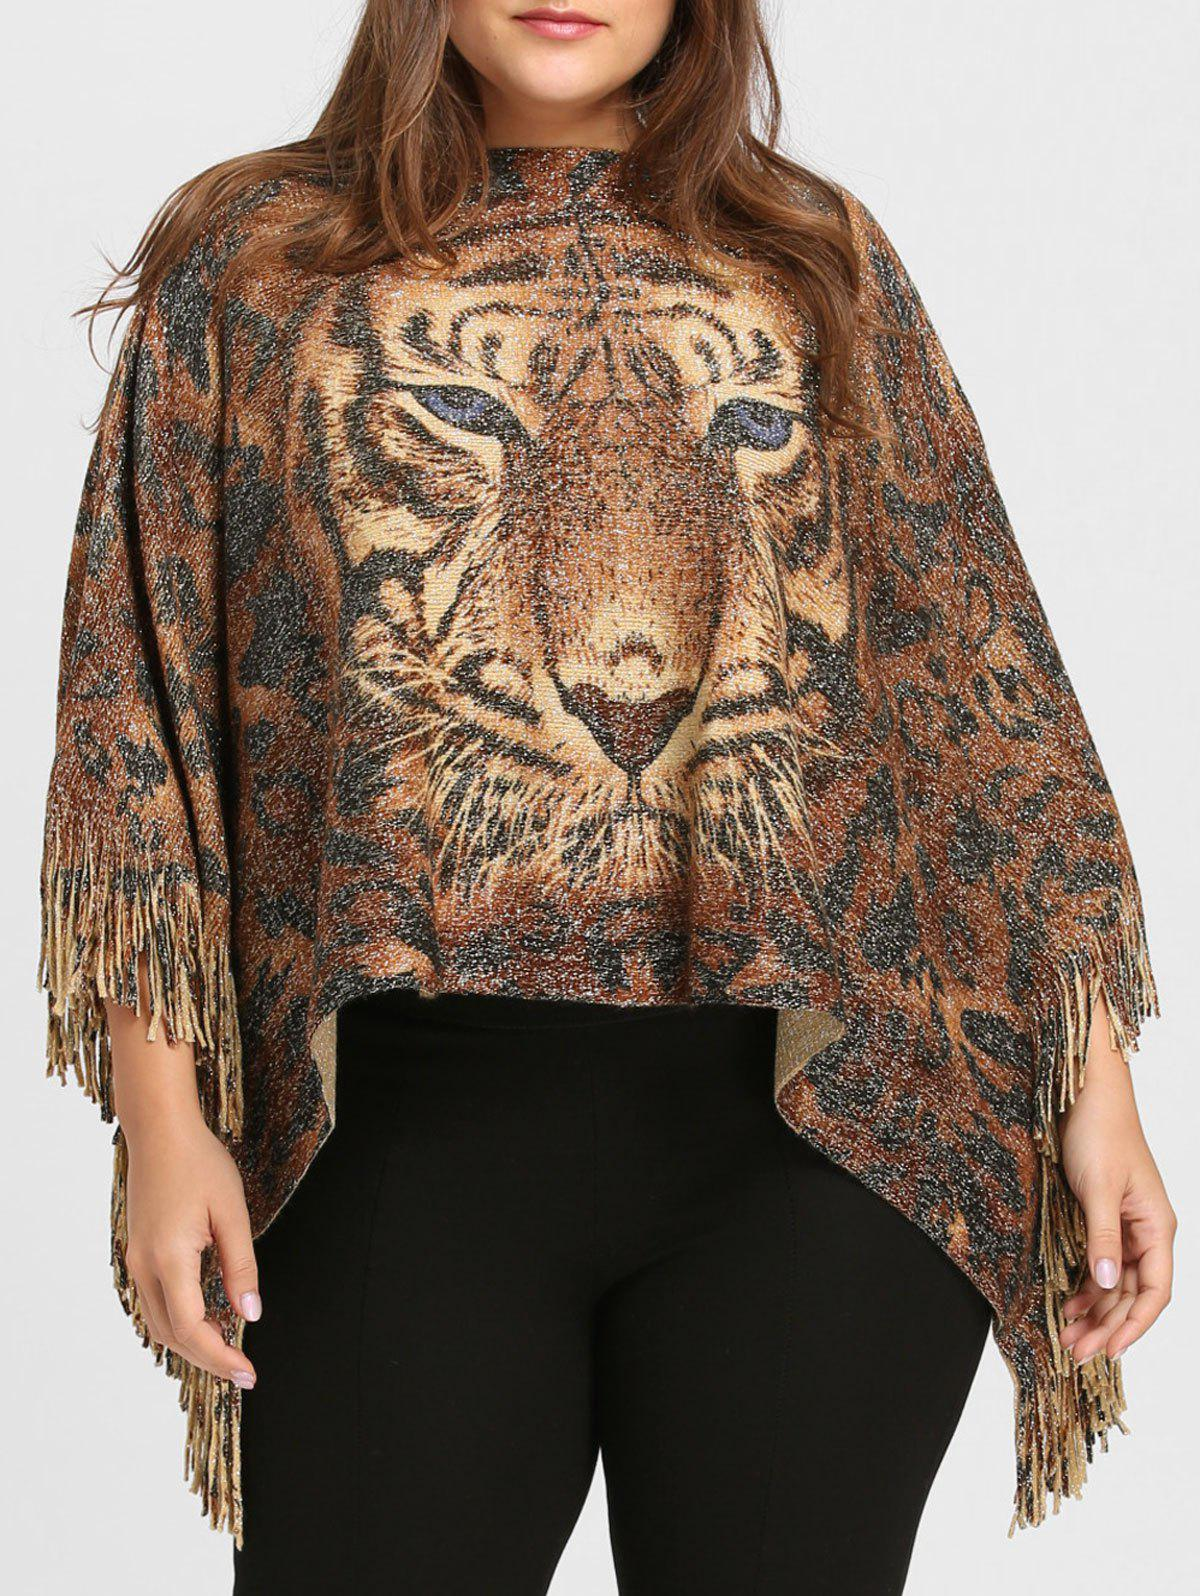 Plus Size Glitter Tiger Printed Fringed Poncho Sweater hollow out plus size poncho sweater